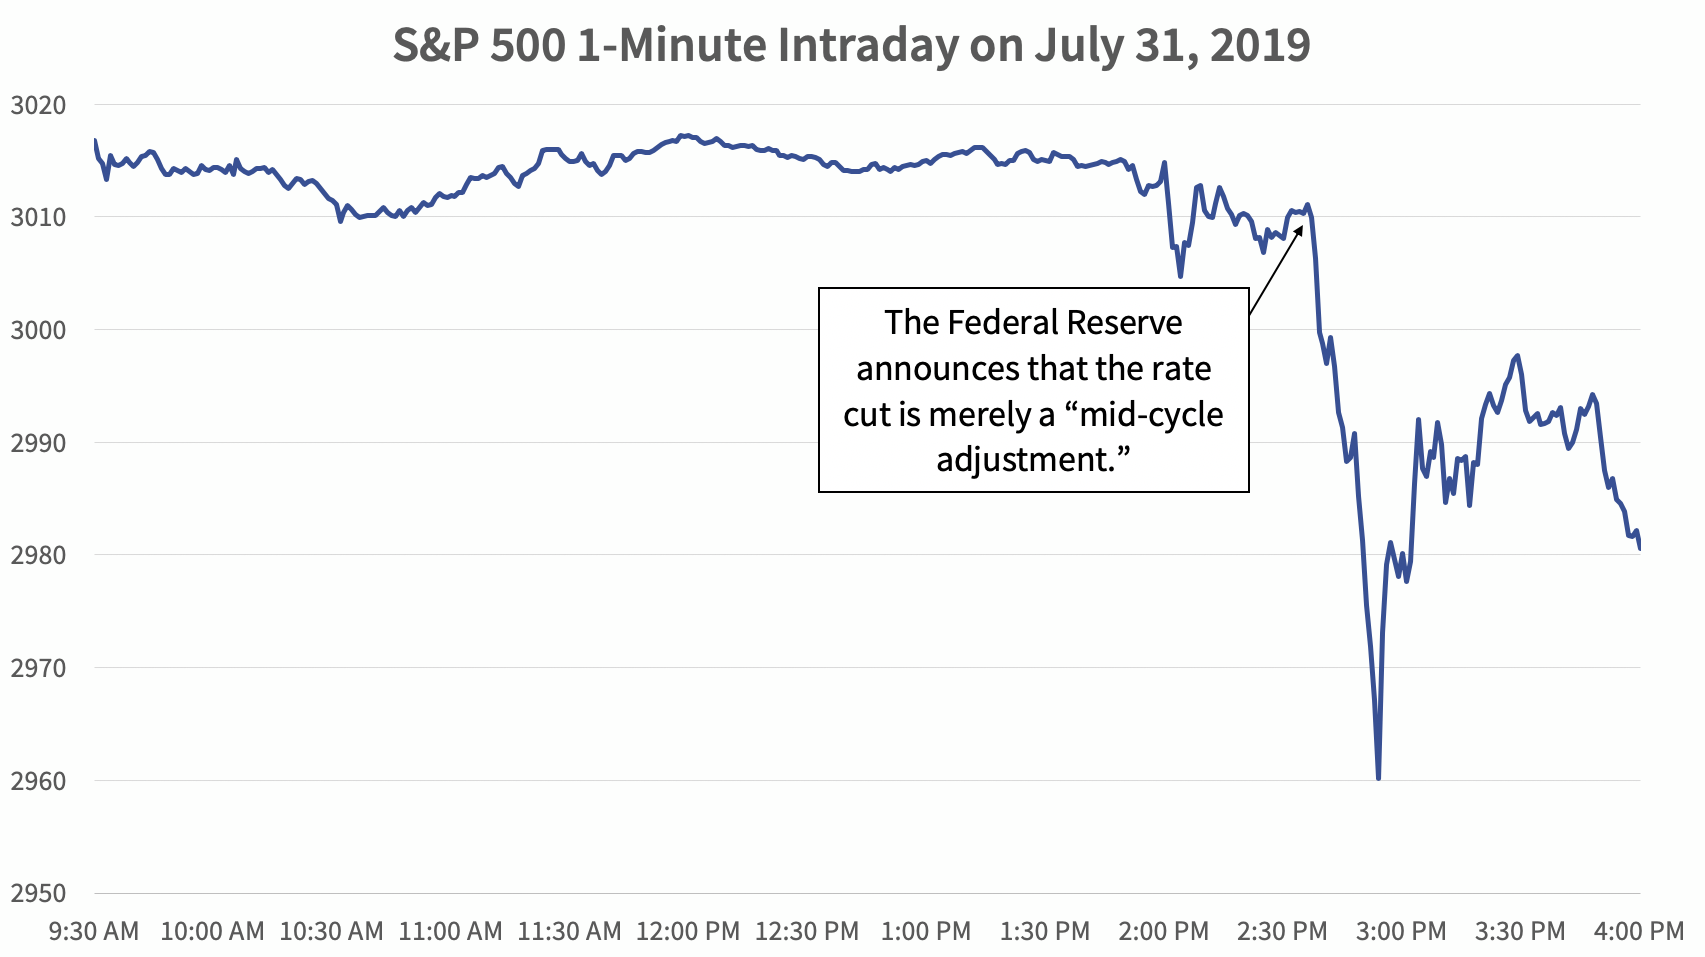 S&P 500 1-Minute Intraday on July 31, 2019